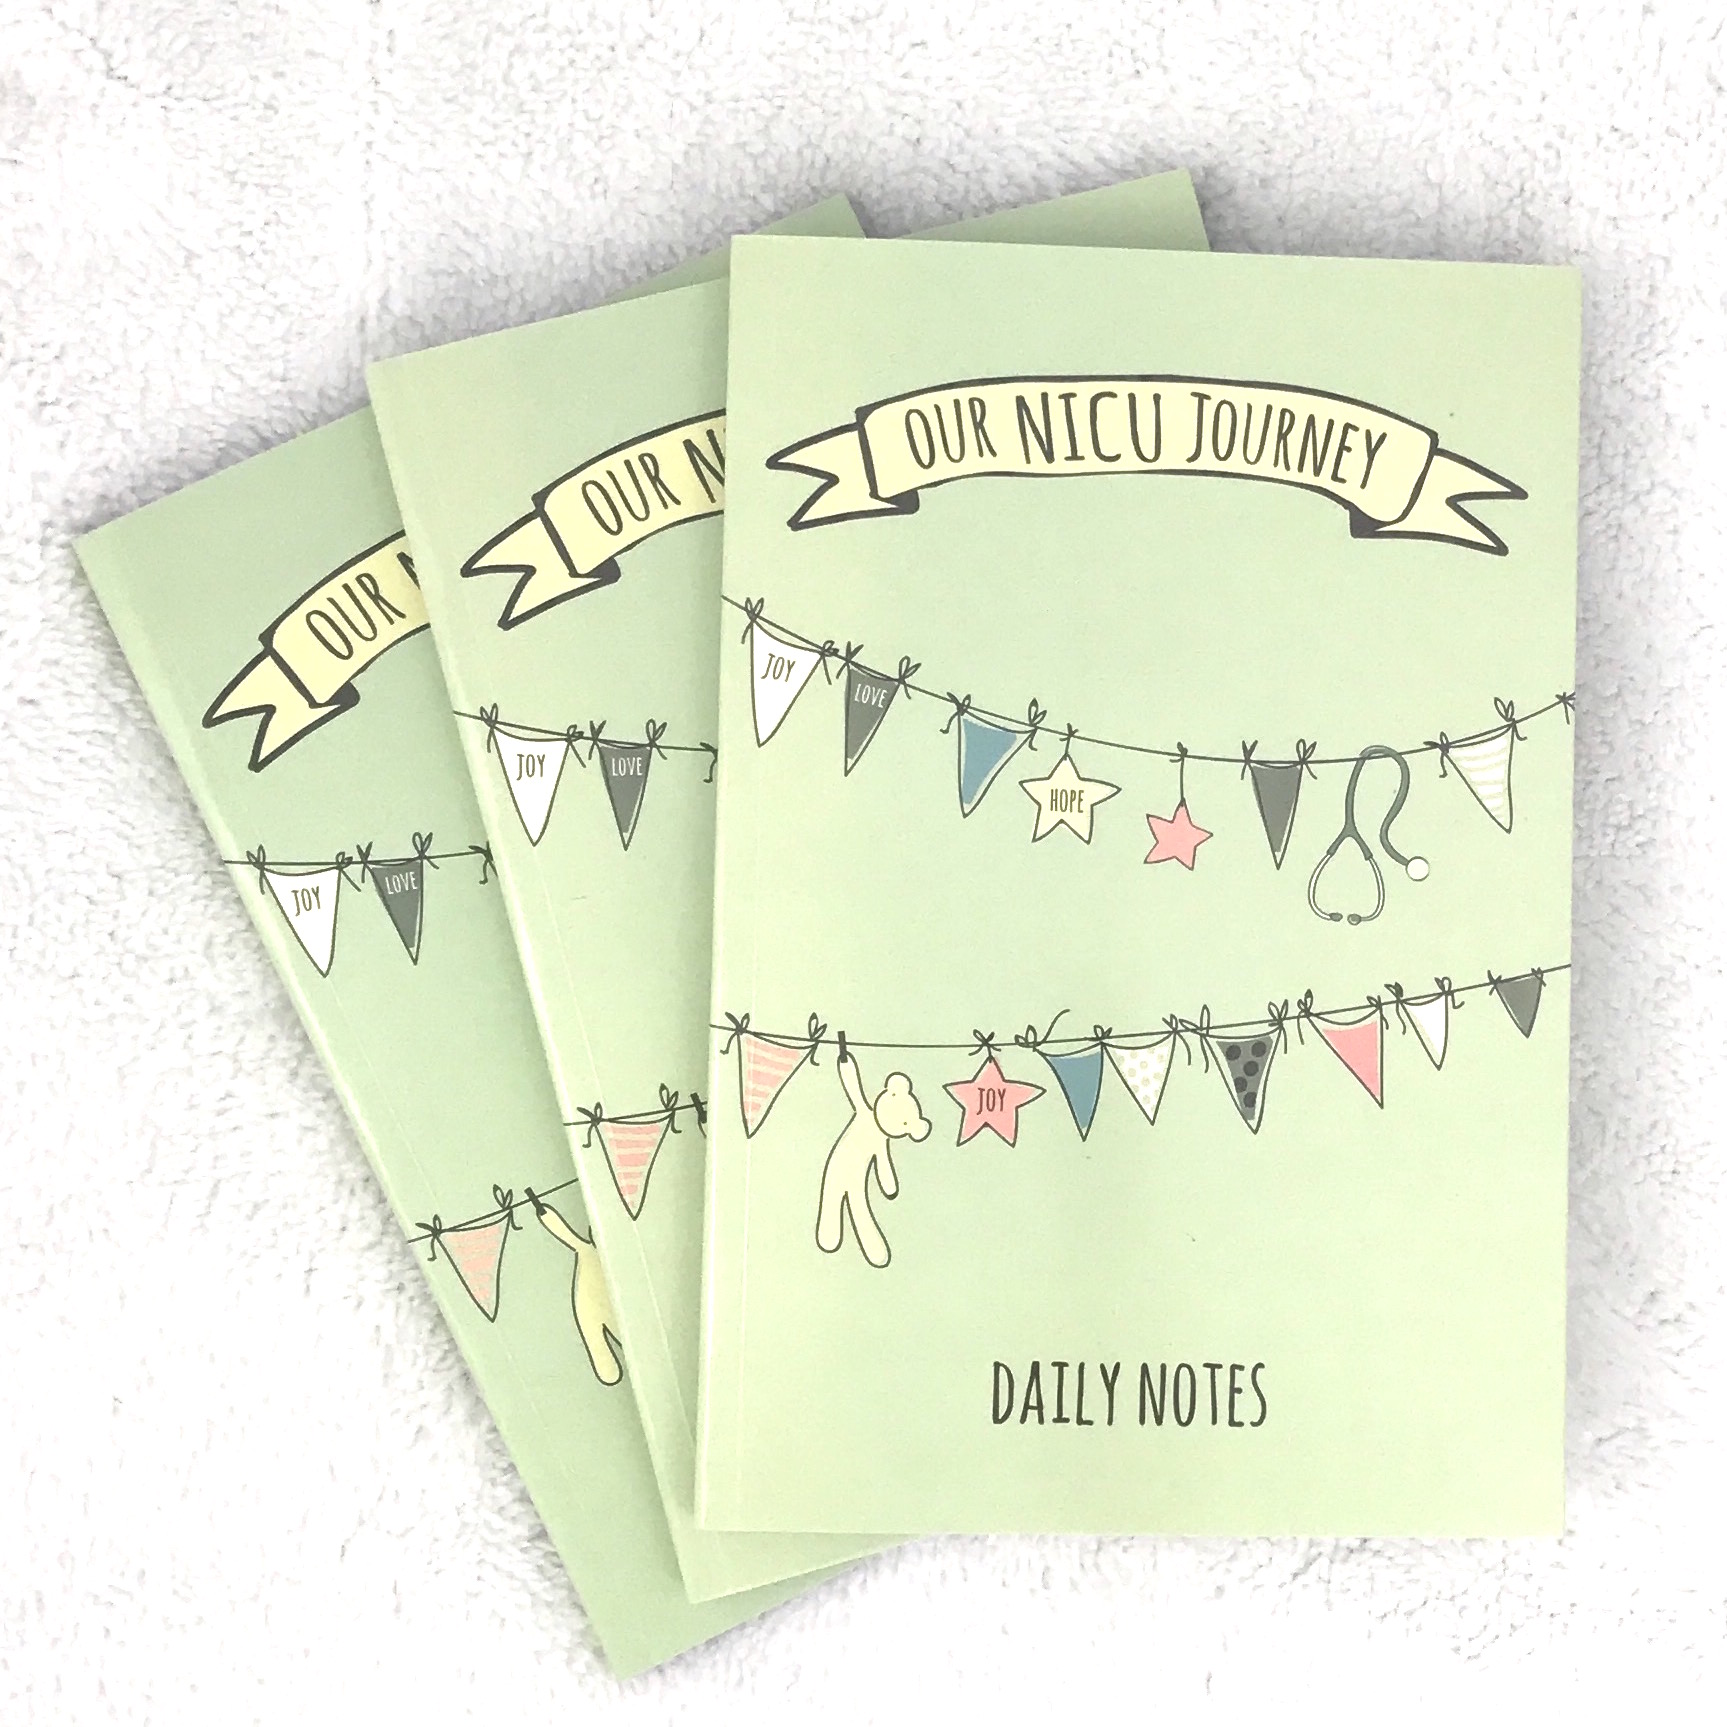 The best NICU journal - Our NICU Journey from Every Tiny Thing